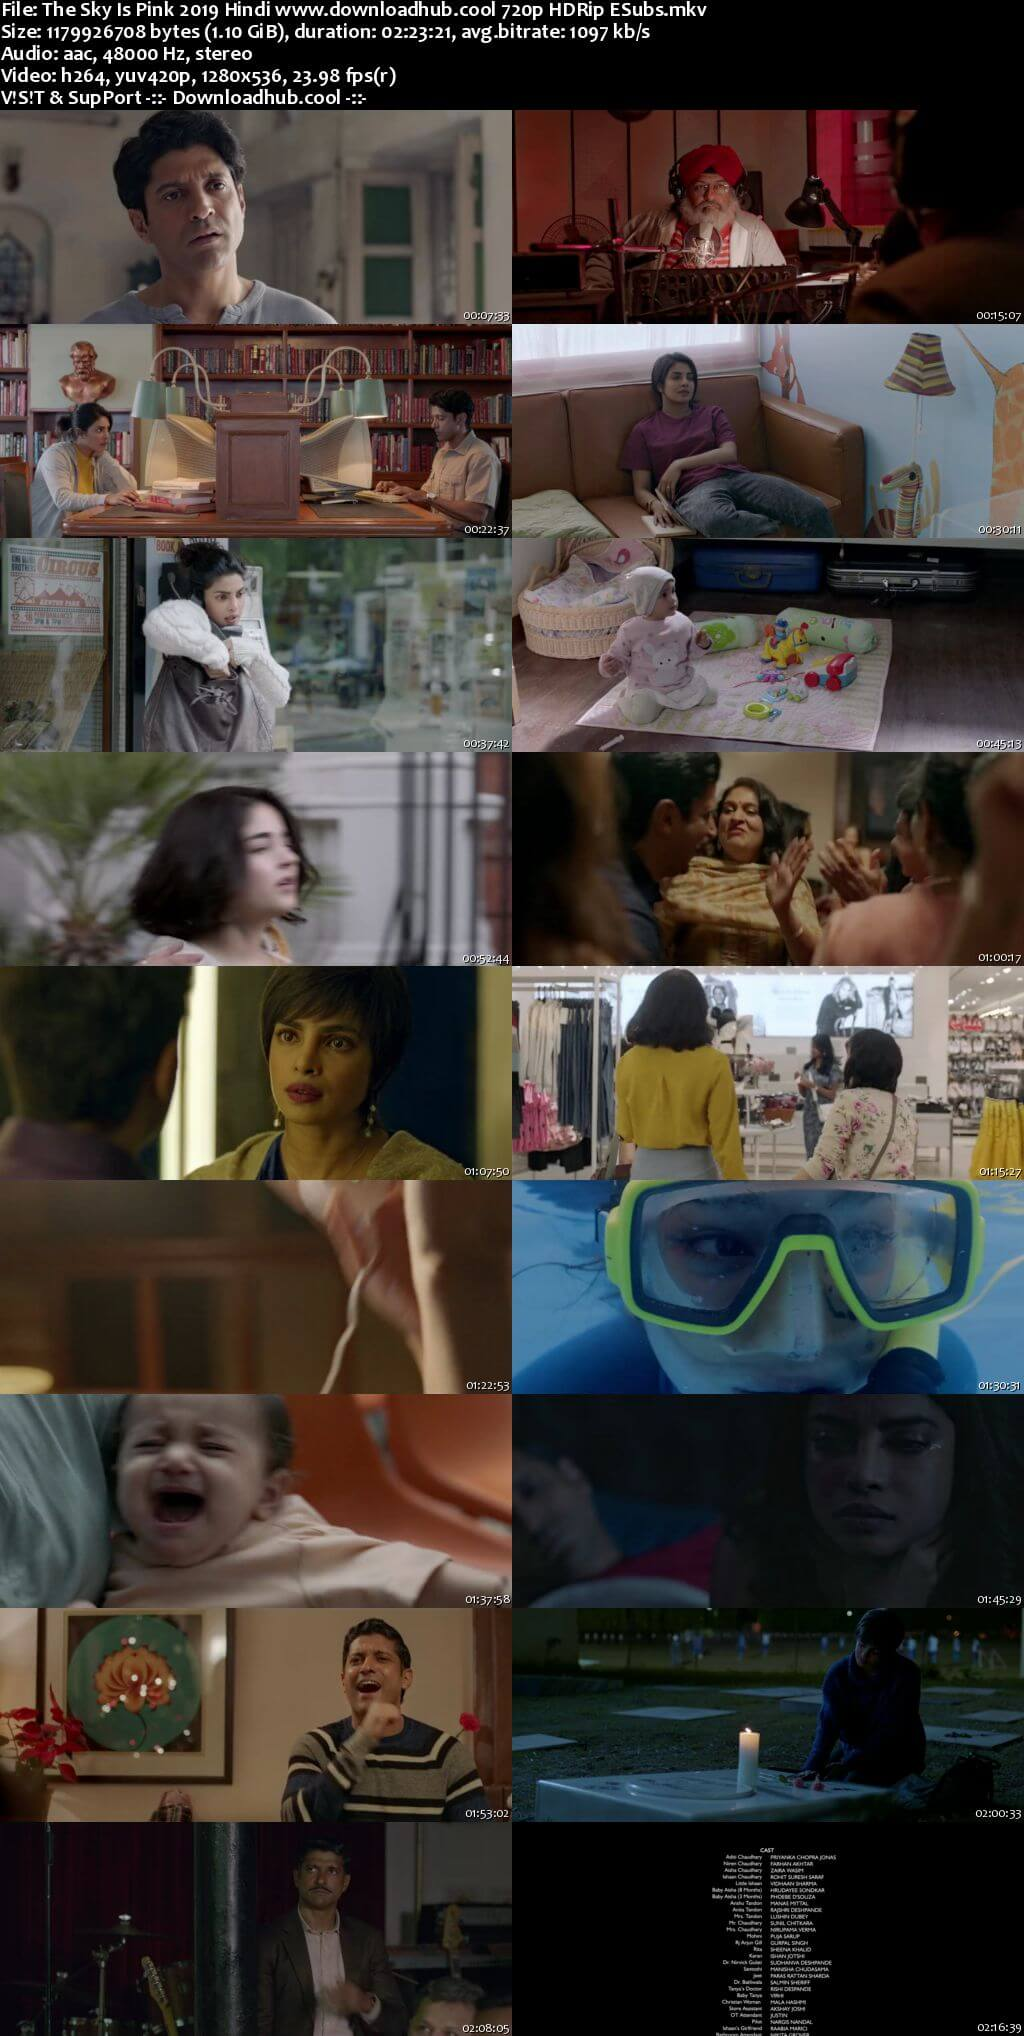 The Sky Is Pink 2019 Hindi 720p HDRip ESubs